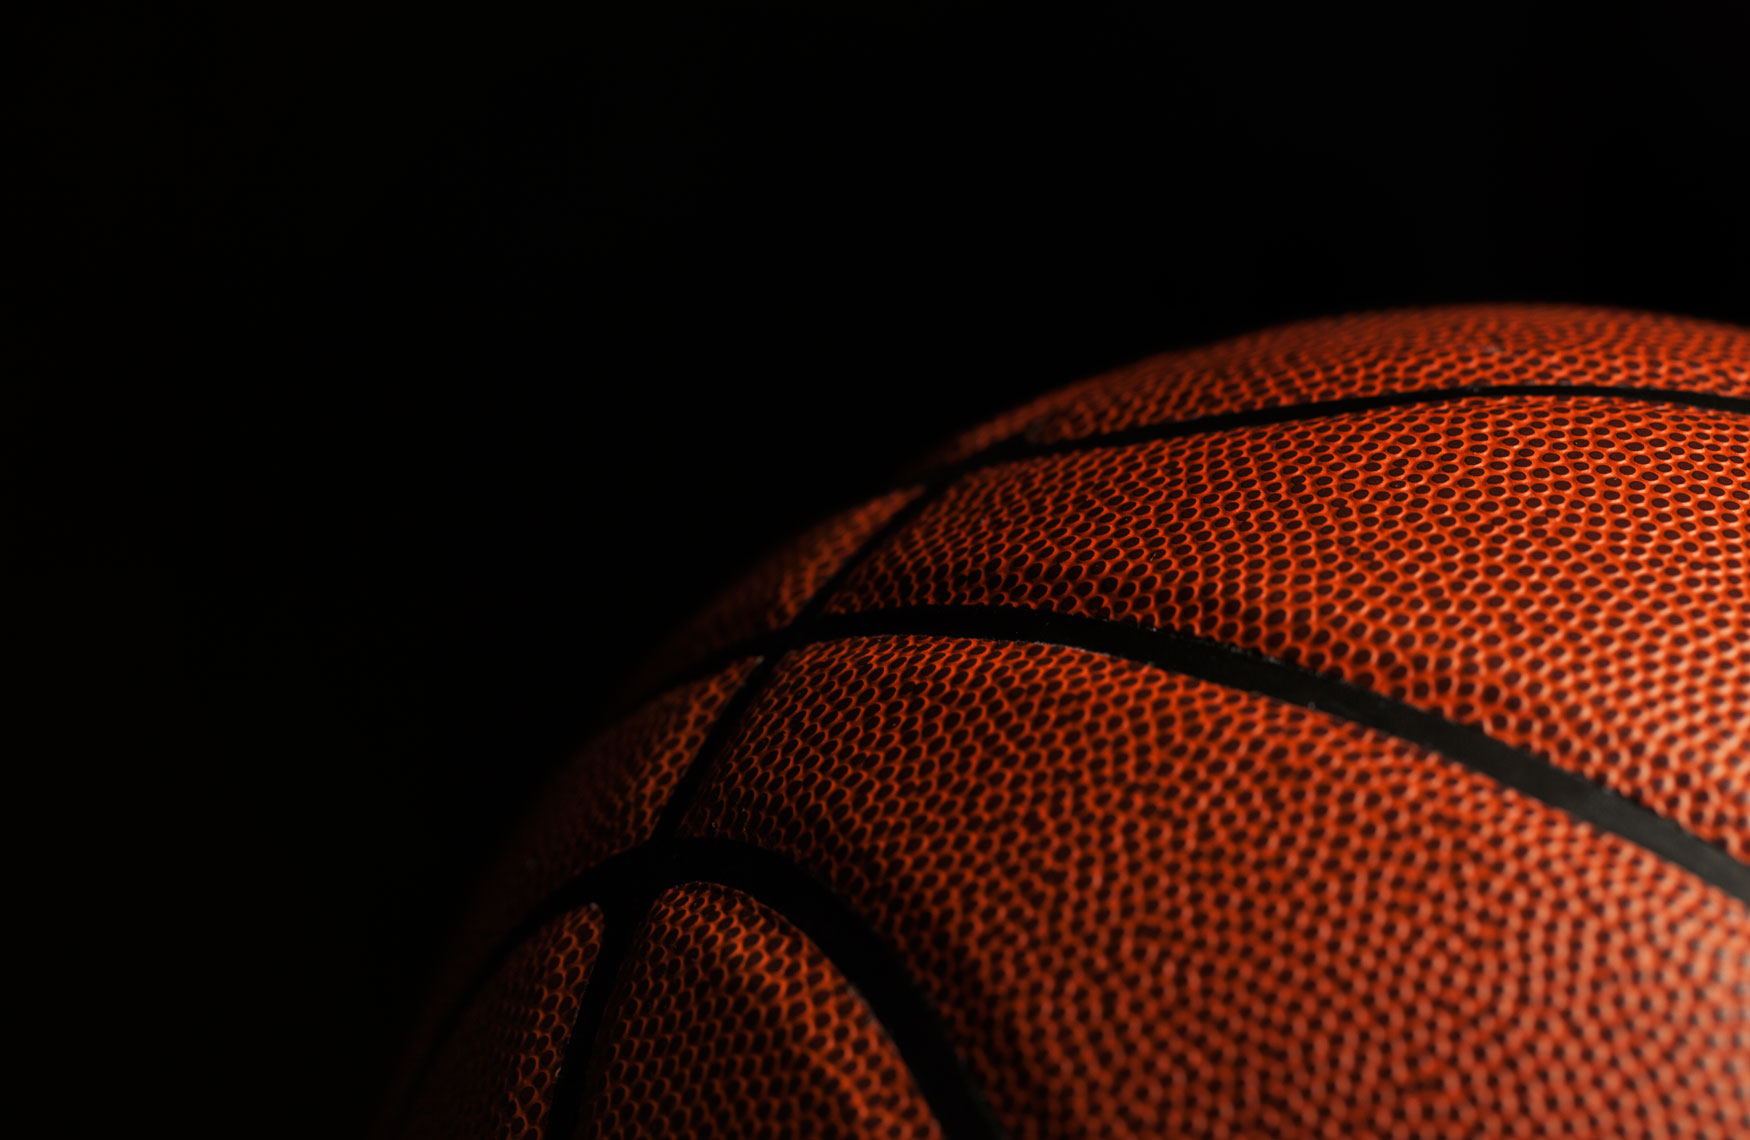 Dan Schrock Product Photographer Gear Basketball Sport Close Up Textrure Detail Beauty Light